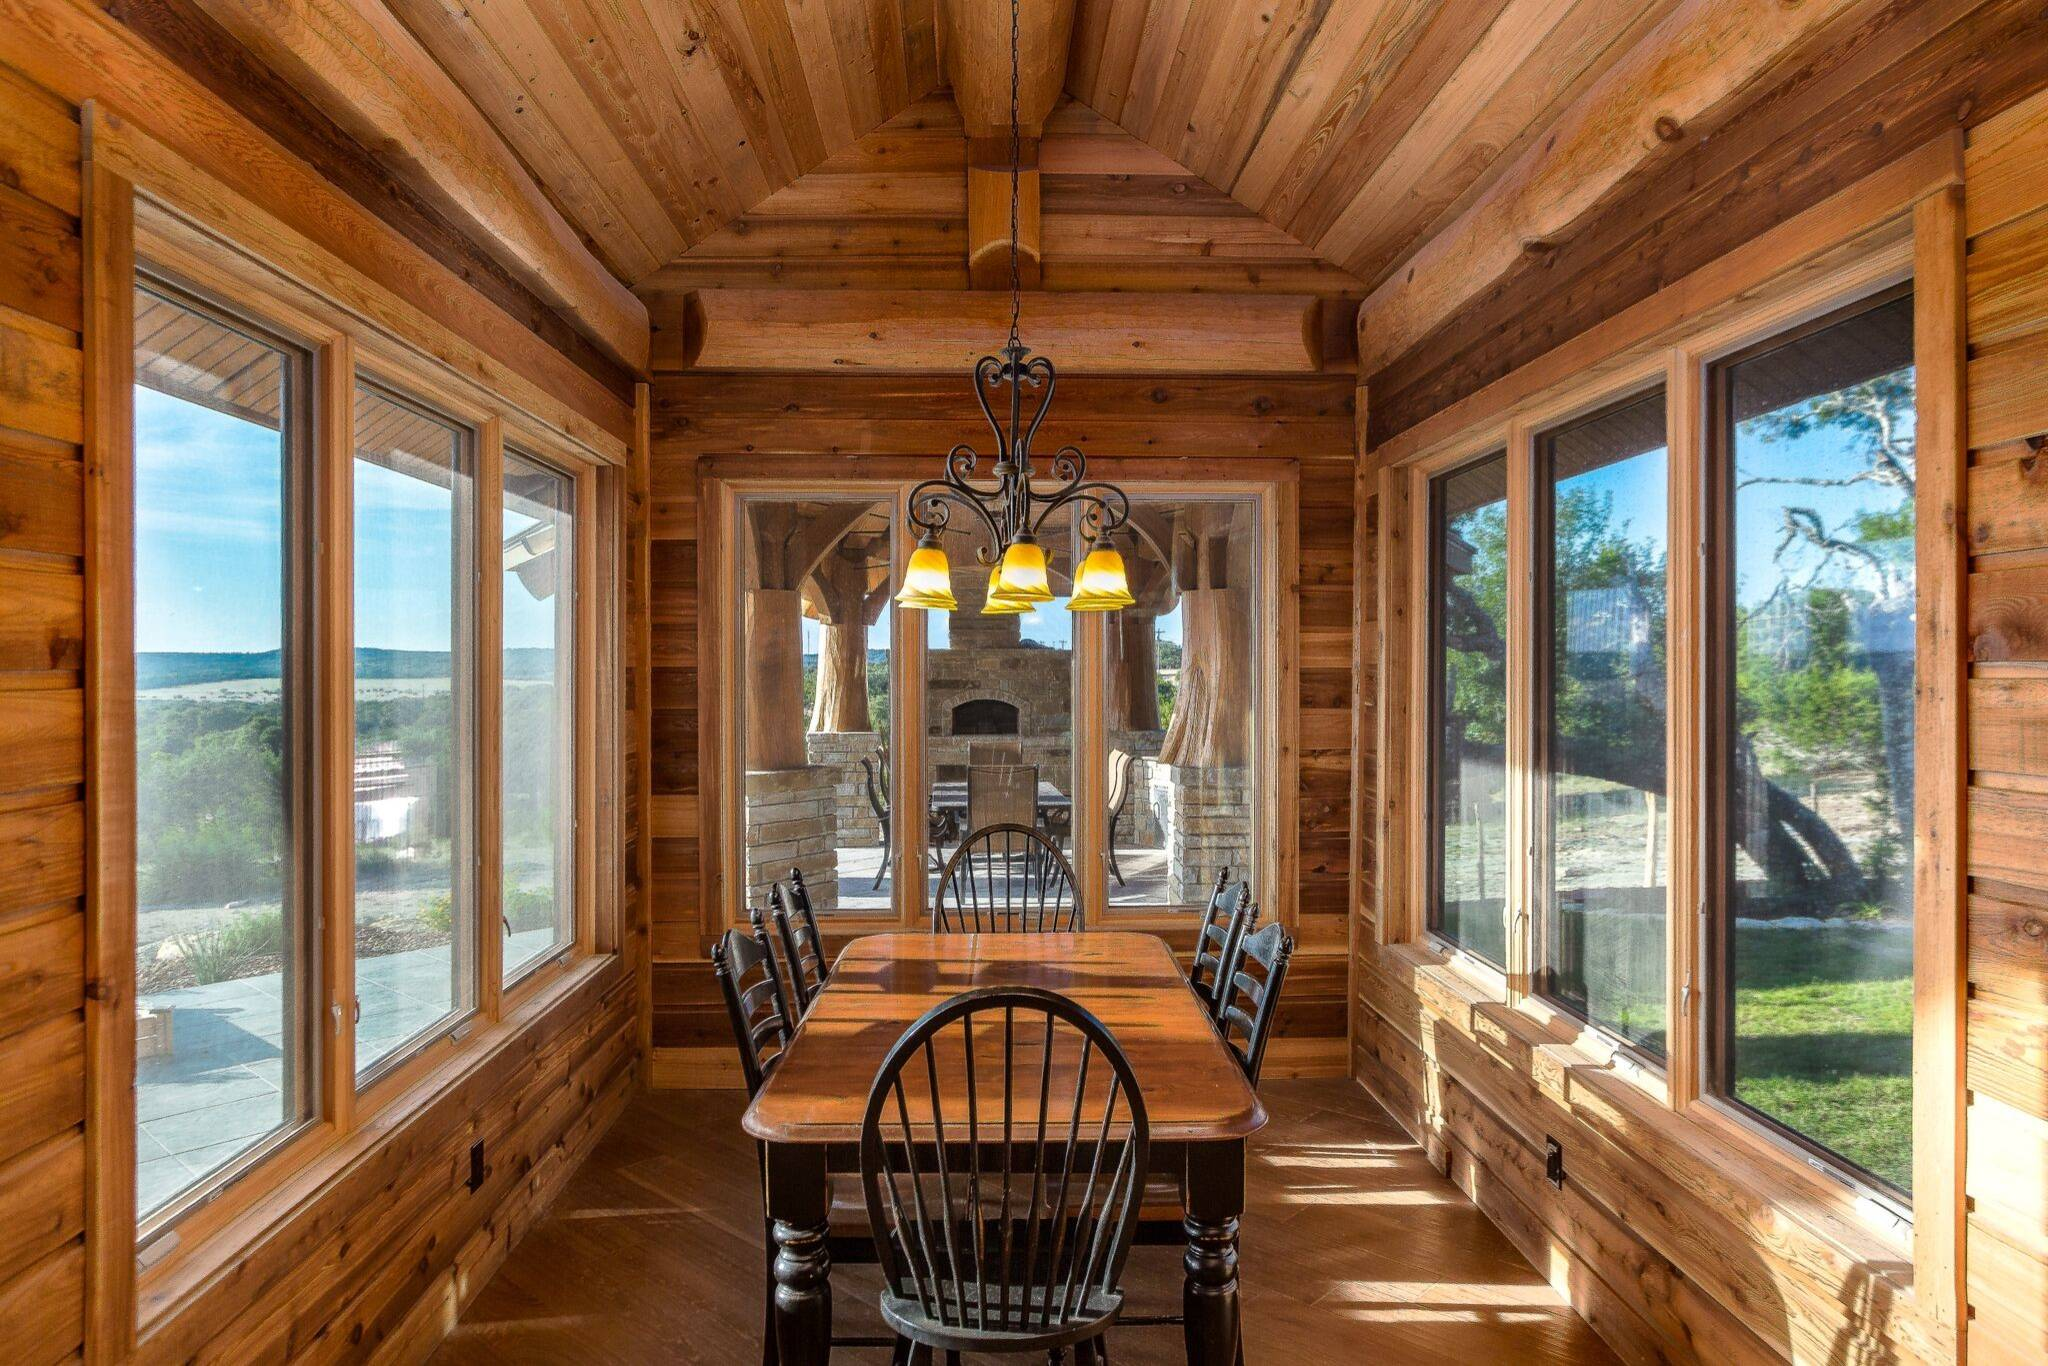 16-Majestic-Rustic-Dining-Room-Designs-You-Cant-Miss-Out-2 Ranch Home Designs on ranch front porch landscaping, townhome designs, bungalow designs, fixer upper designs, farmhouse designs, stone building designs, studio apartment designs, ranch homes with sunrooms, shotgun house designs, gable house designs, ranch fashion, concrete homes designs, ranch luxury homes, indian modern house designs, front porch designs, ranch photography, ranch dream homes, ranch log homes, ranch modular homes, ranch homes with porches,